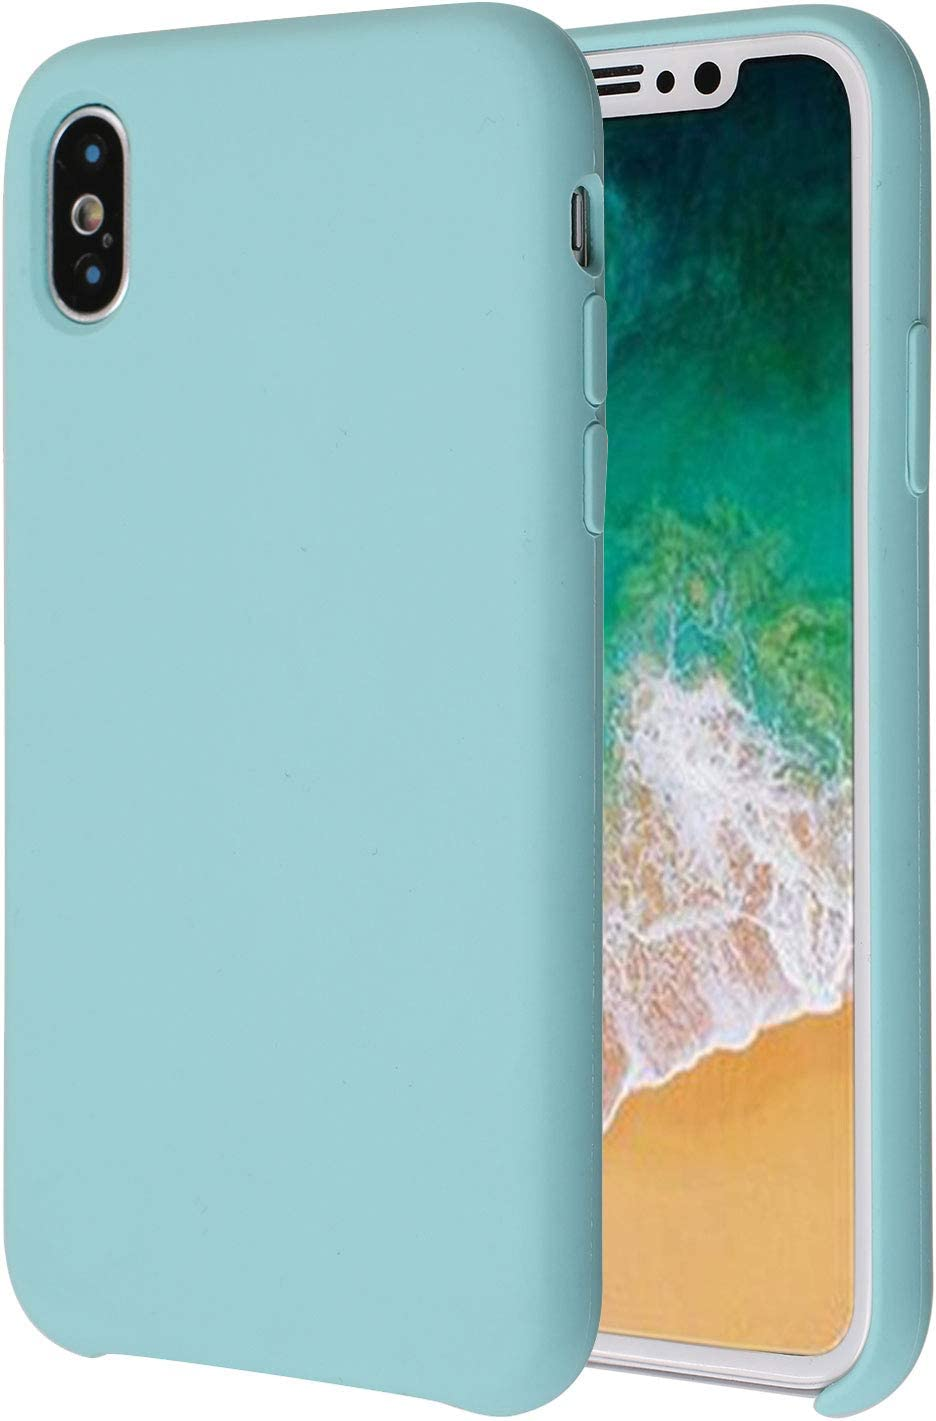 Soft Liquid Silicone iPhone X Cover Case Inner Soft Microfiber Cloth Lining Cushion for Apple iPhone X/10 5.8inch (Mint)